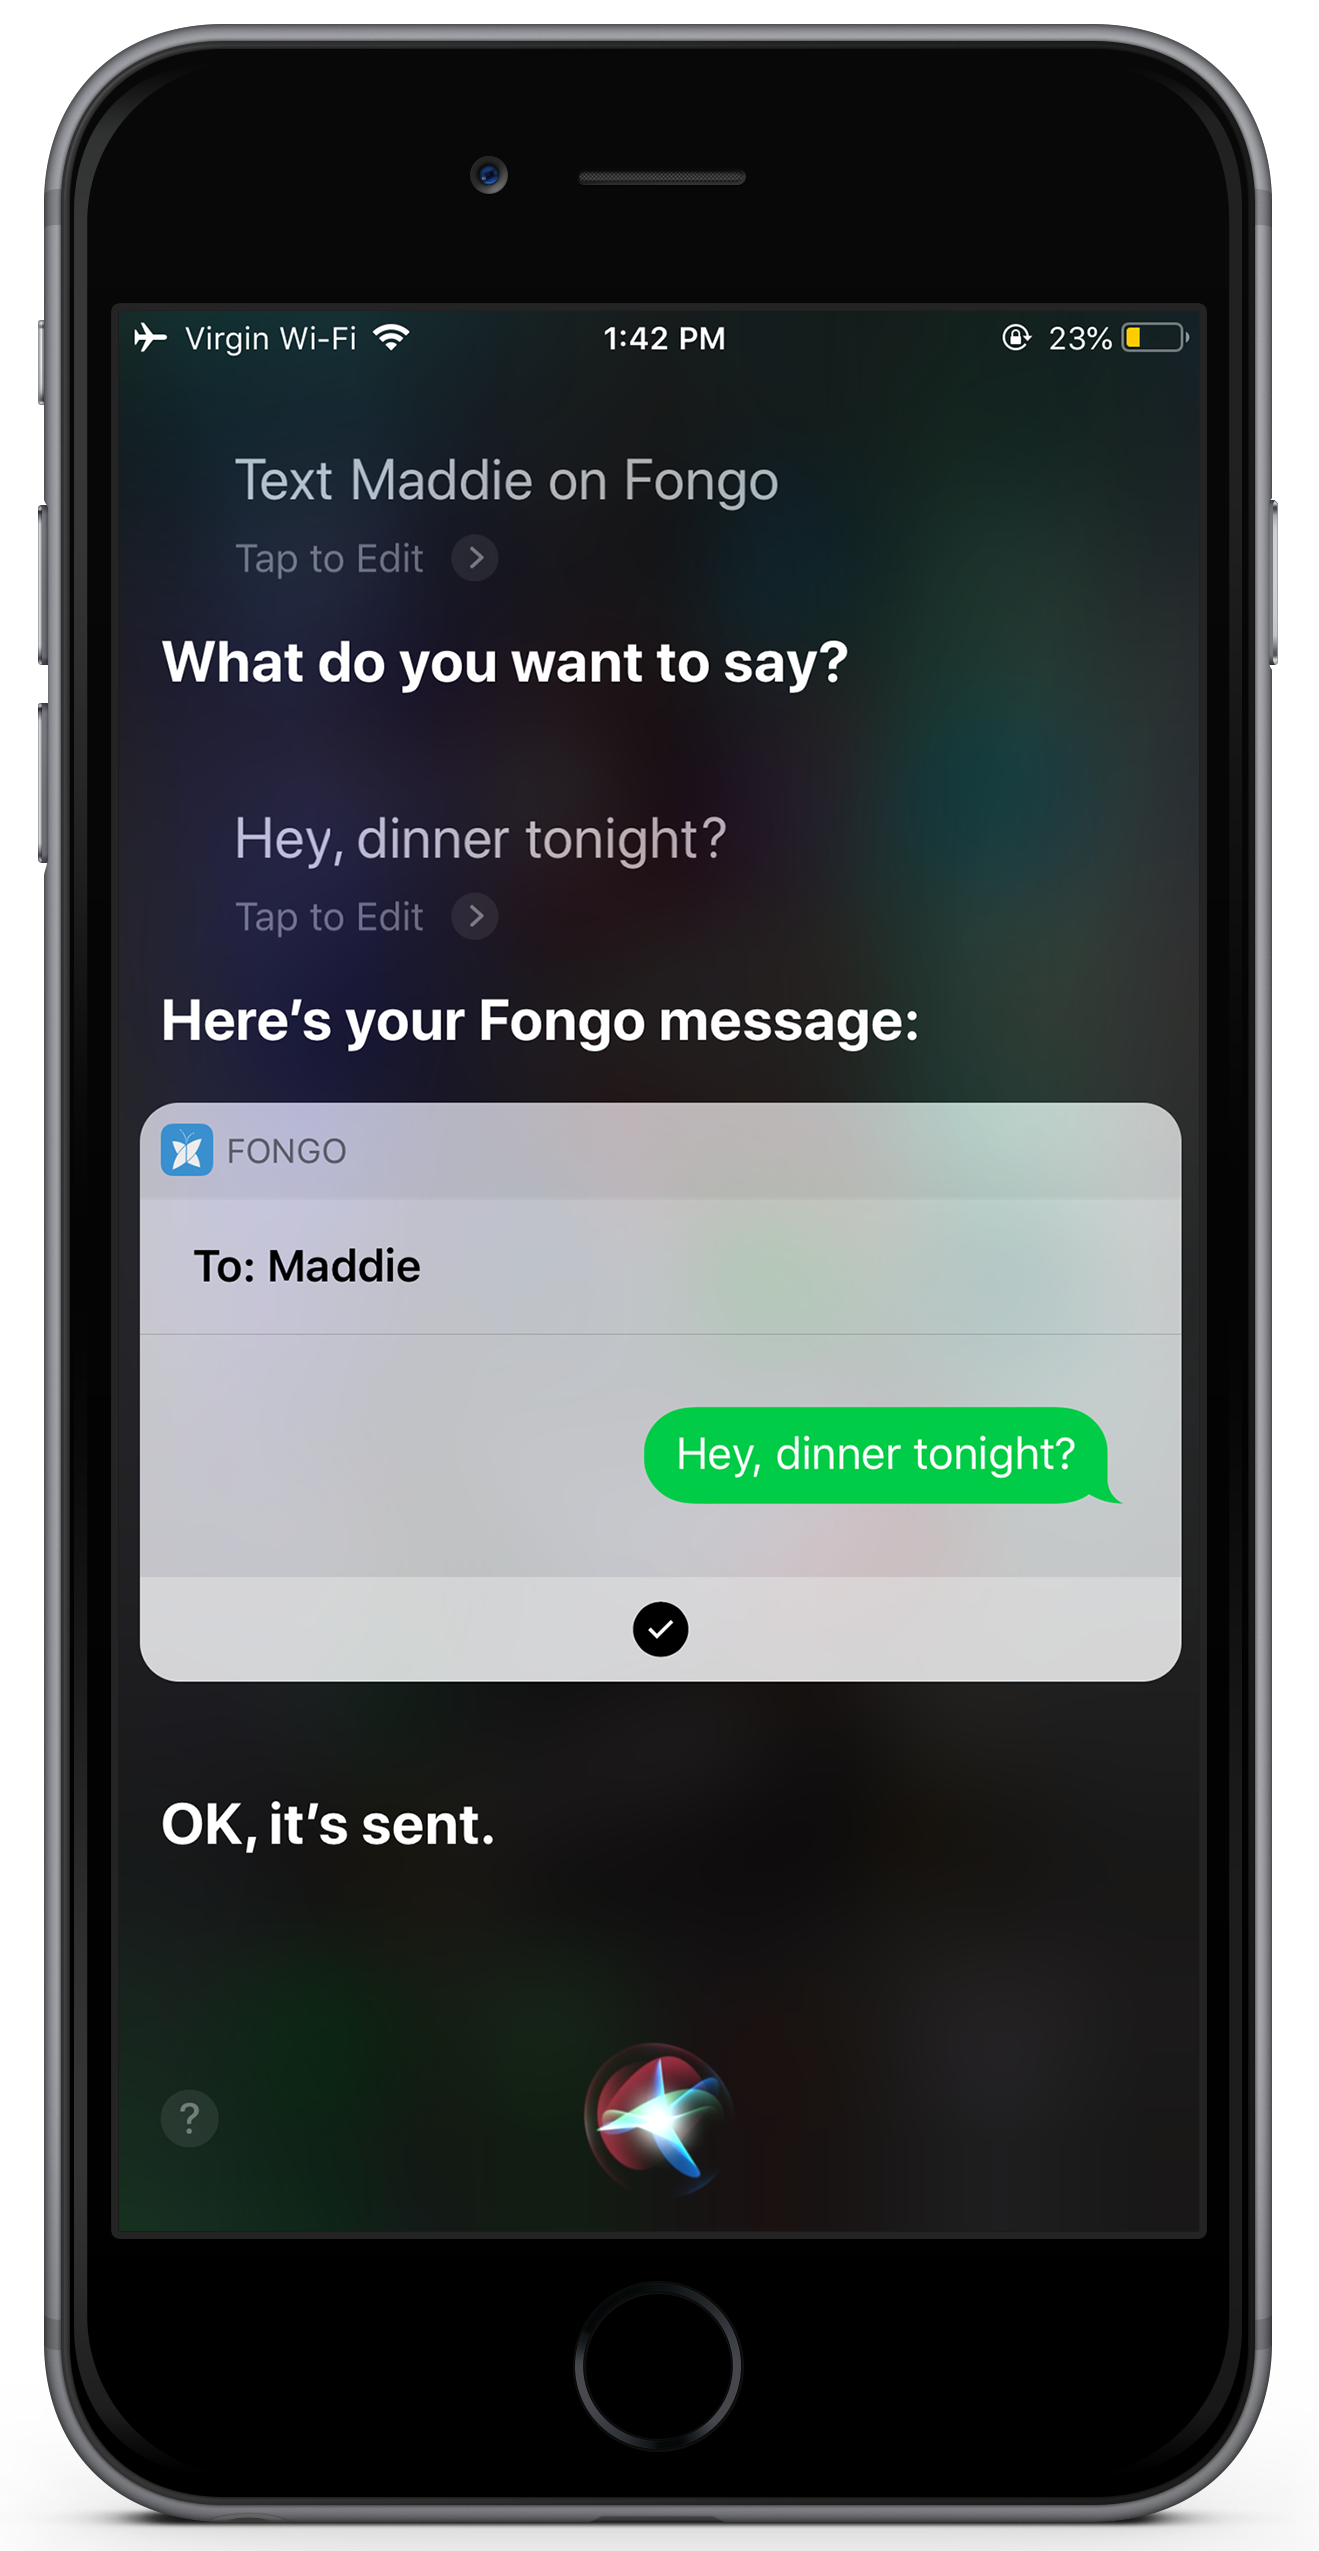 Fongo Siri Messaging Screenshot